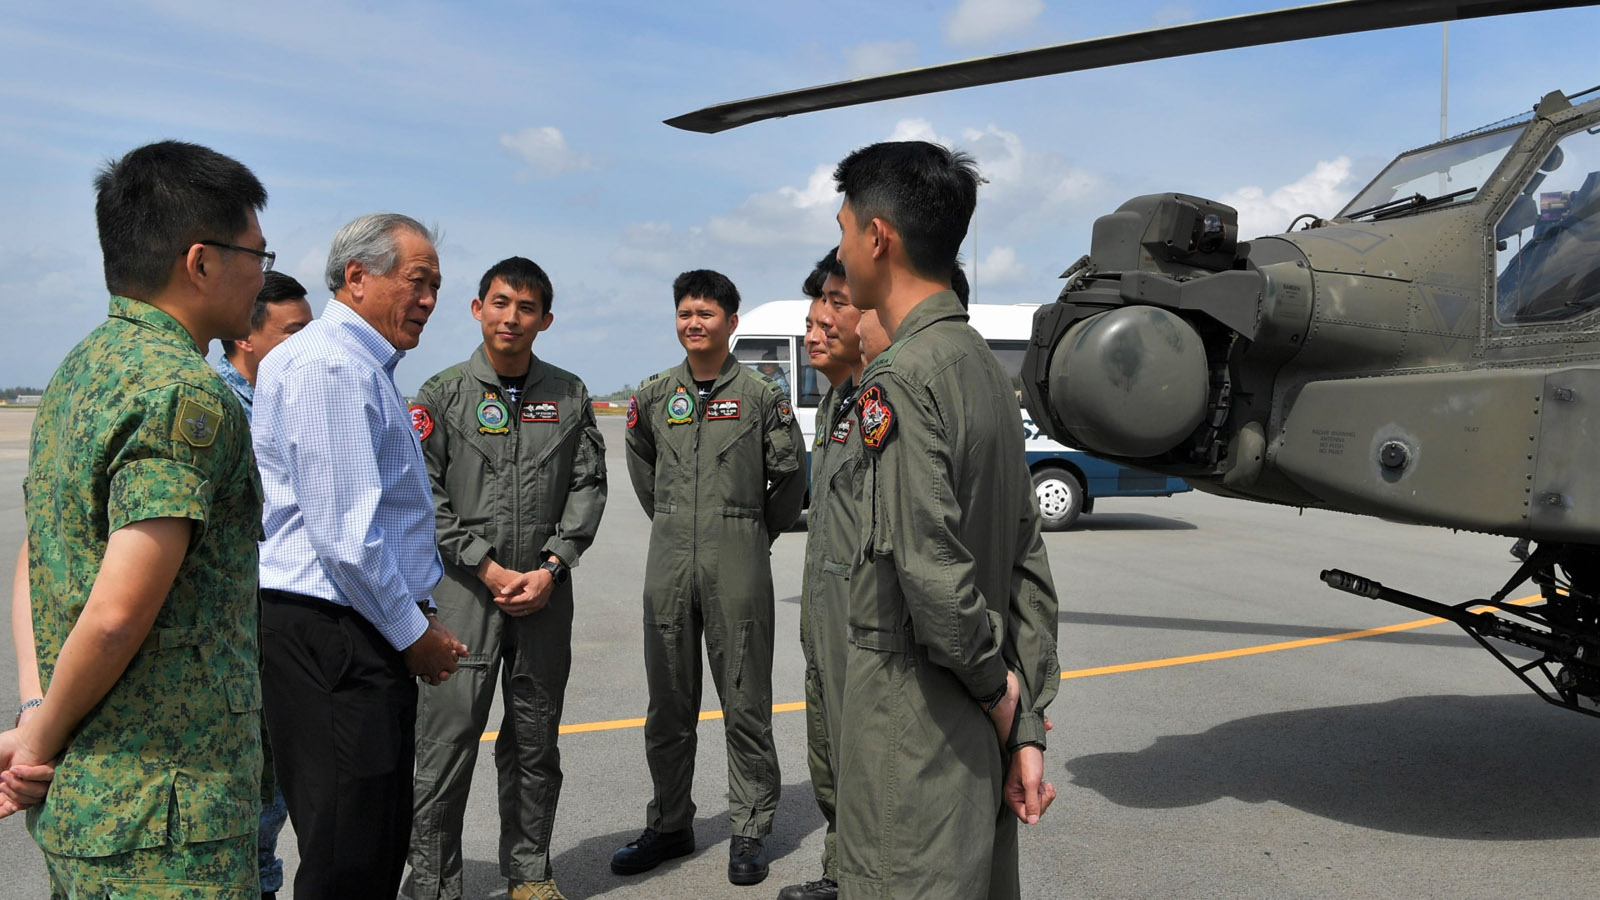 Dr_Ng_Singapore_Airshow_to_feature_inaugural_aerial_displays